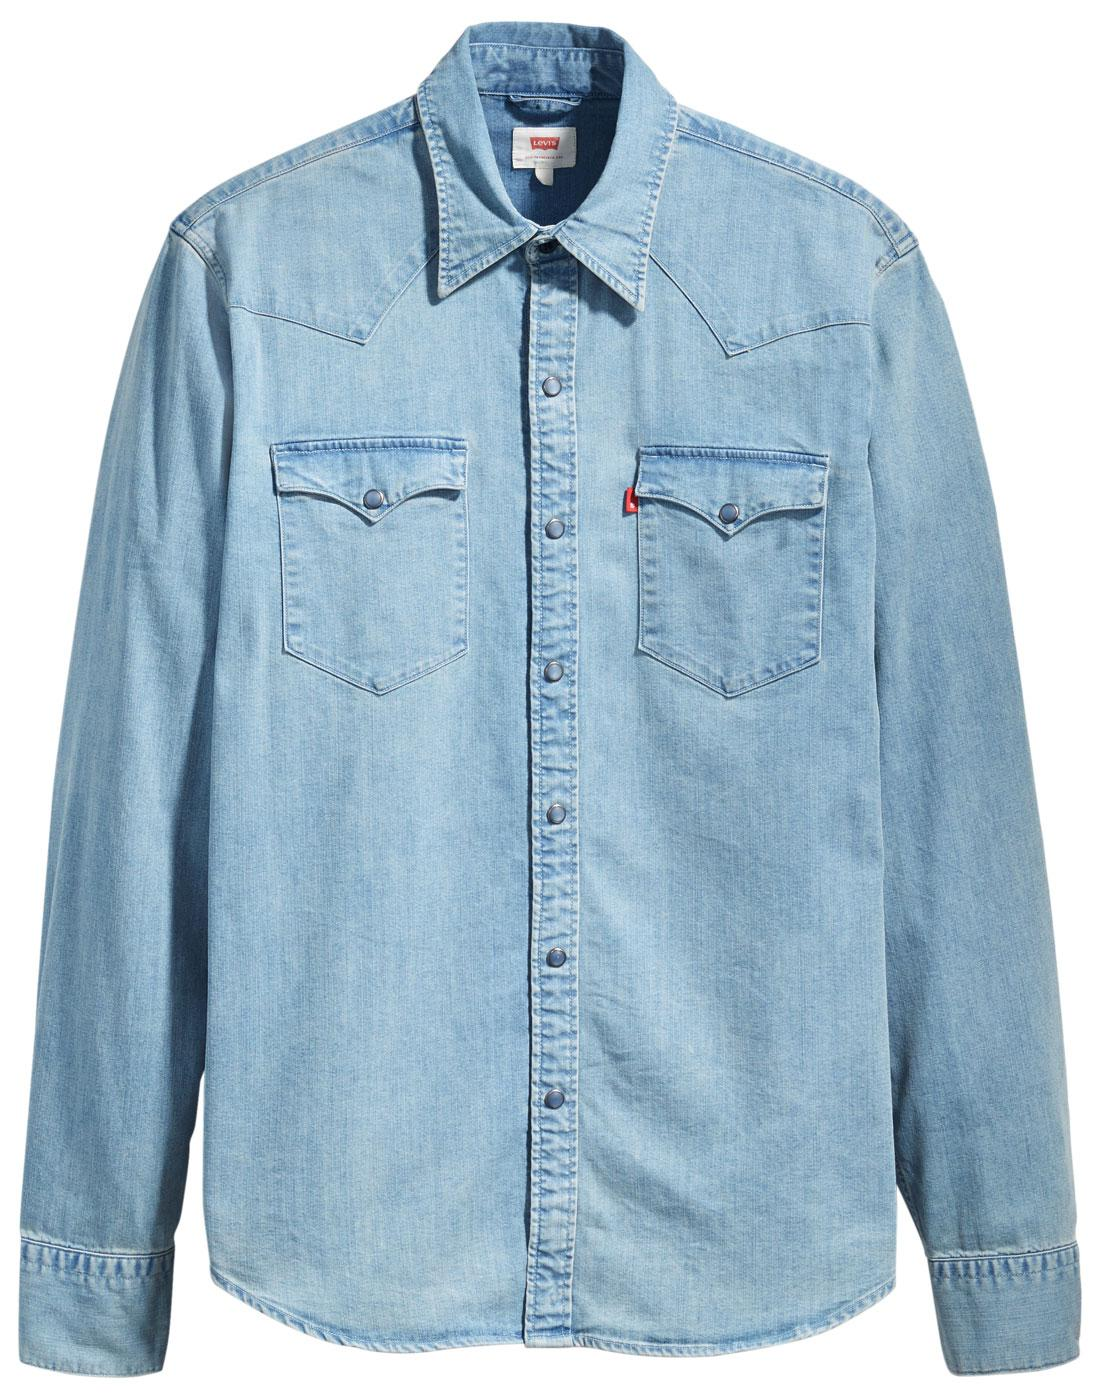 Barstow LEVI'S Retro Brooklyn Denim Western Shirt